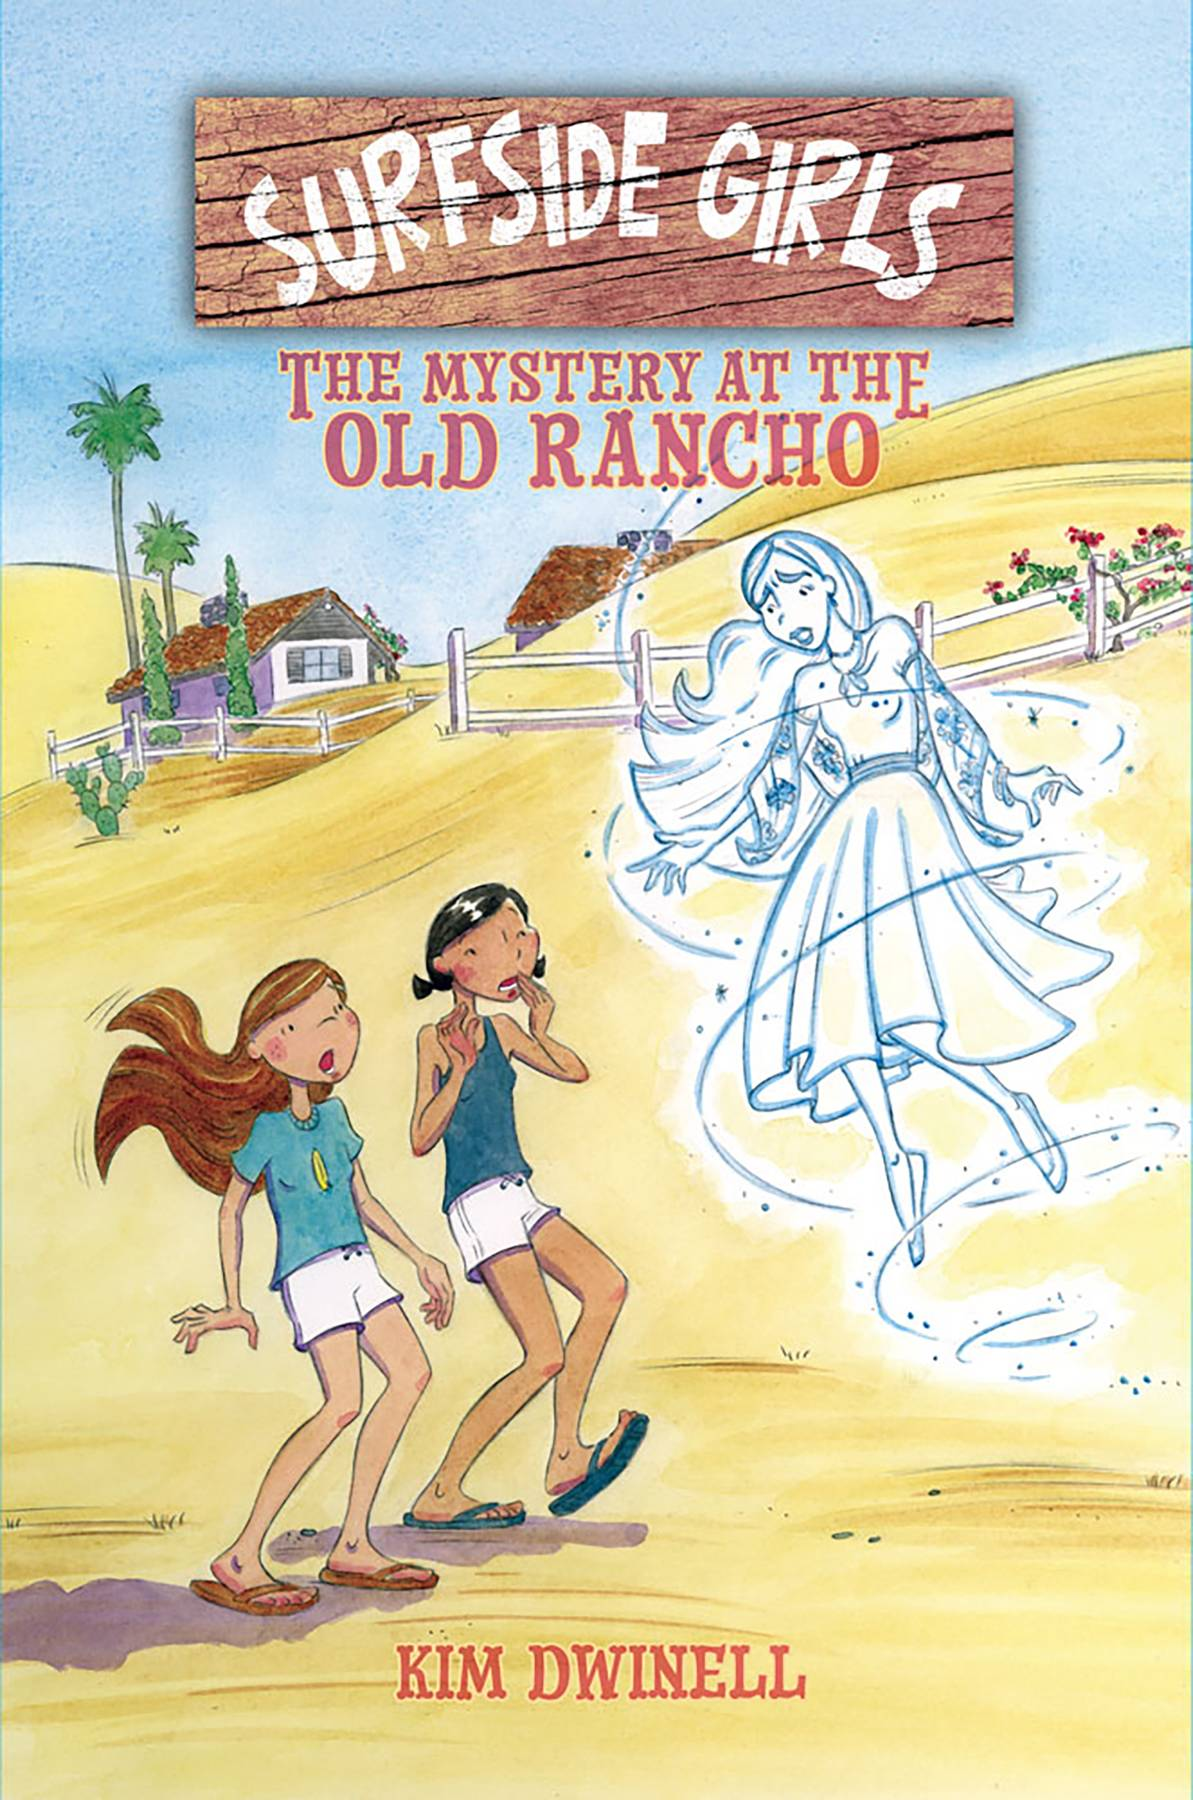 SURFSIDE GIRLS GN 2 MYSTERY AT OLD RANCHO.jpg